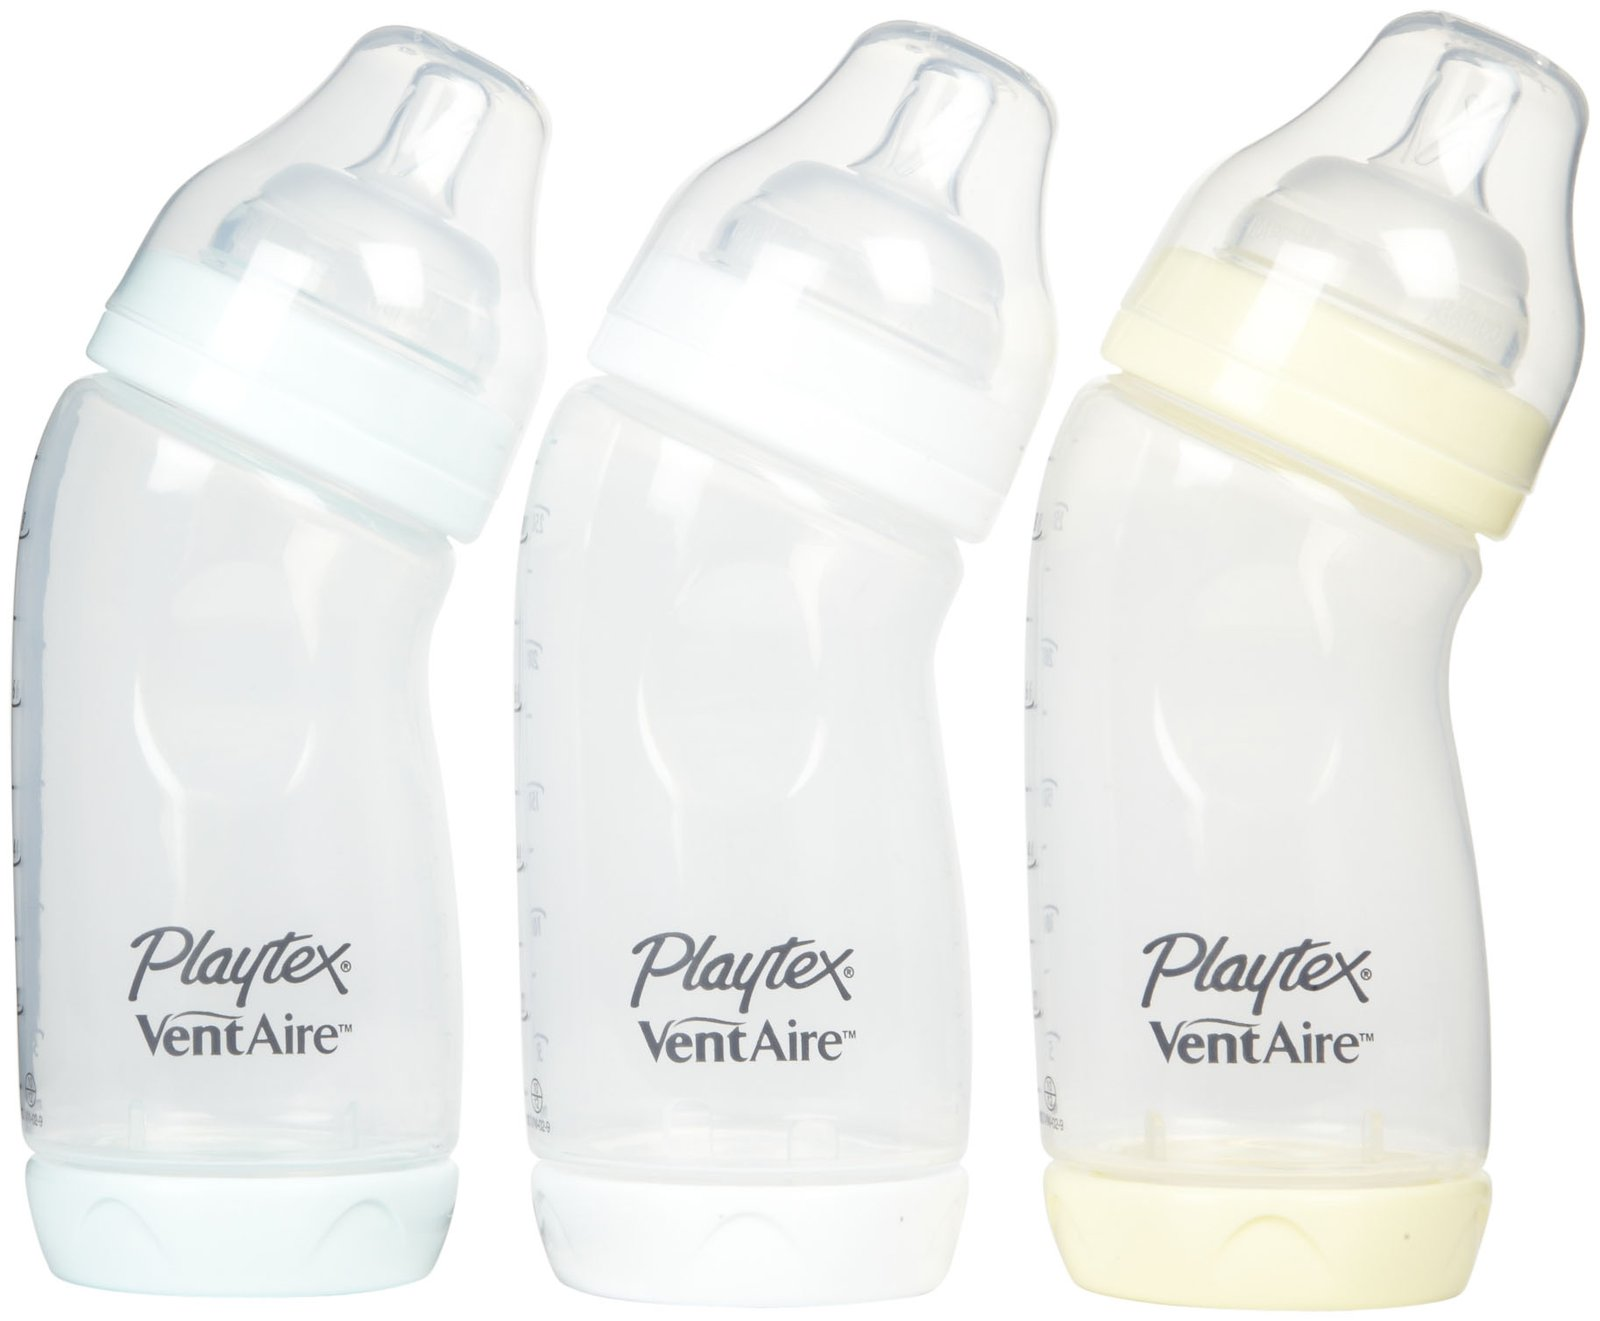 Playtex VentAire Advanced Wide Baby Bottles - Reviews of Top 10 Baby Bottles and Accessories - For Good Feeding Times